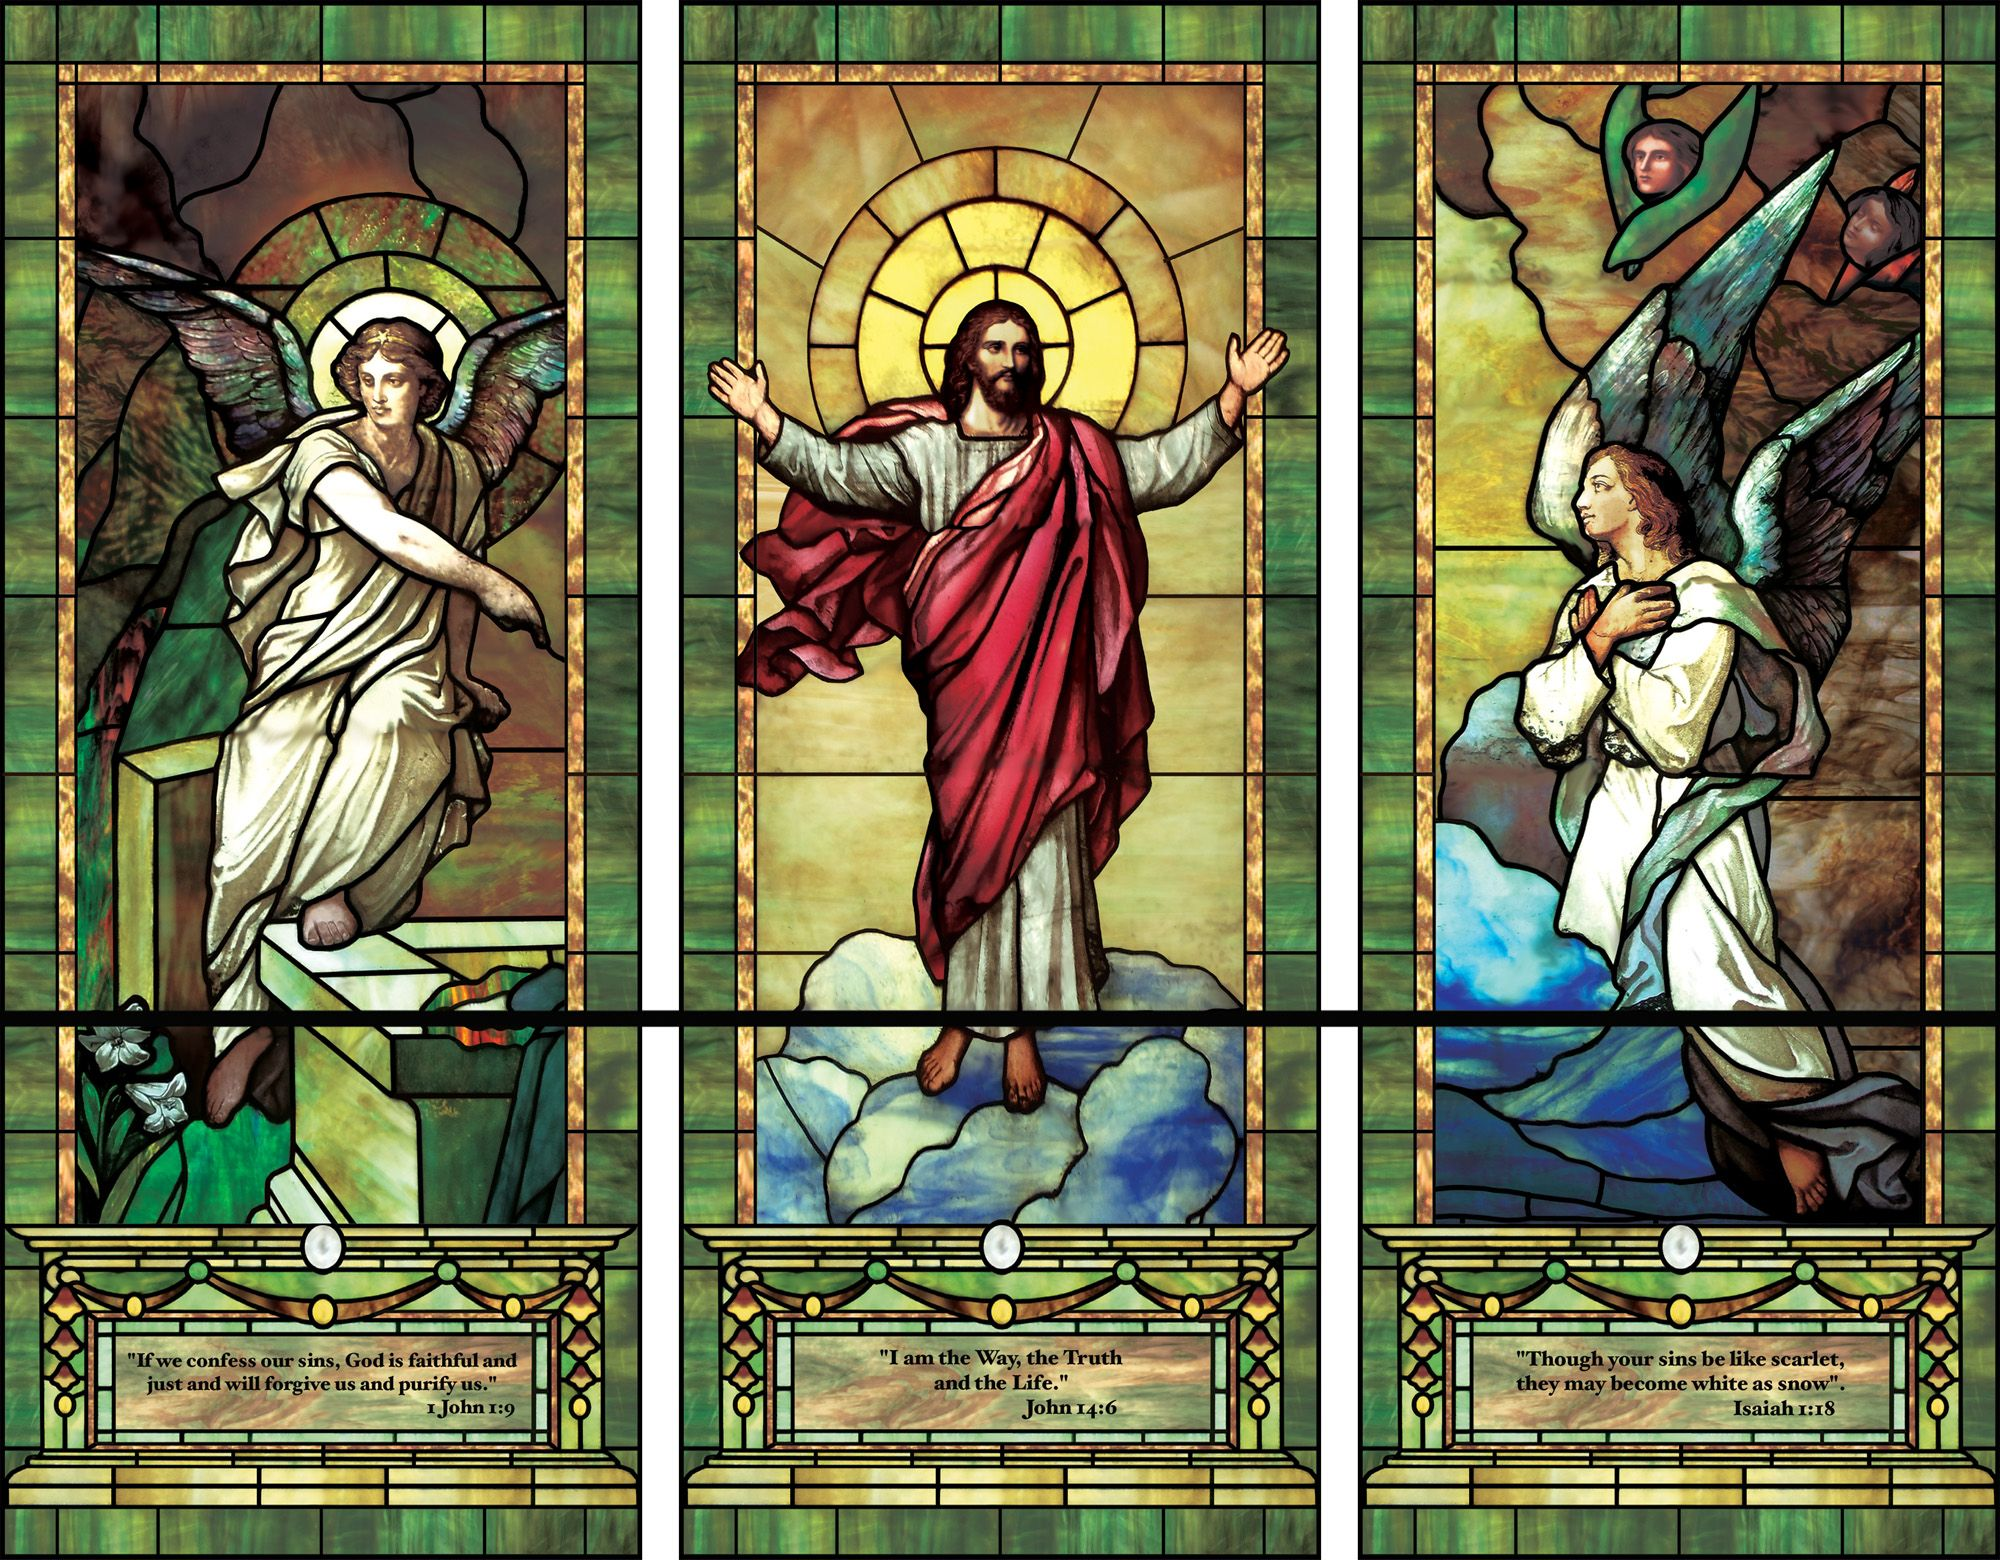 Beach theme decoration stained glass window panels arts crafts - Church Stained Glass Window Patterns Artistic Illuminado Decorative Window Film Designs For Your Church